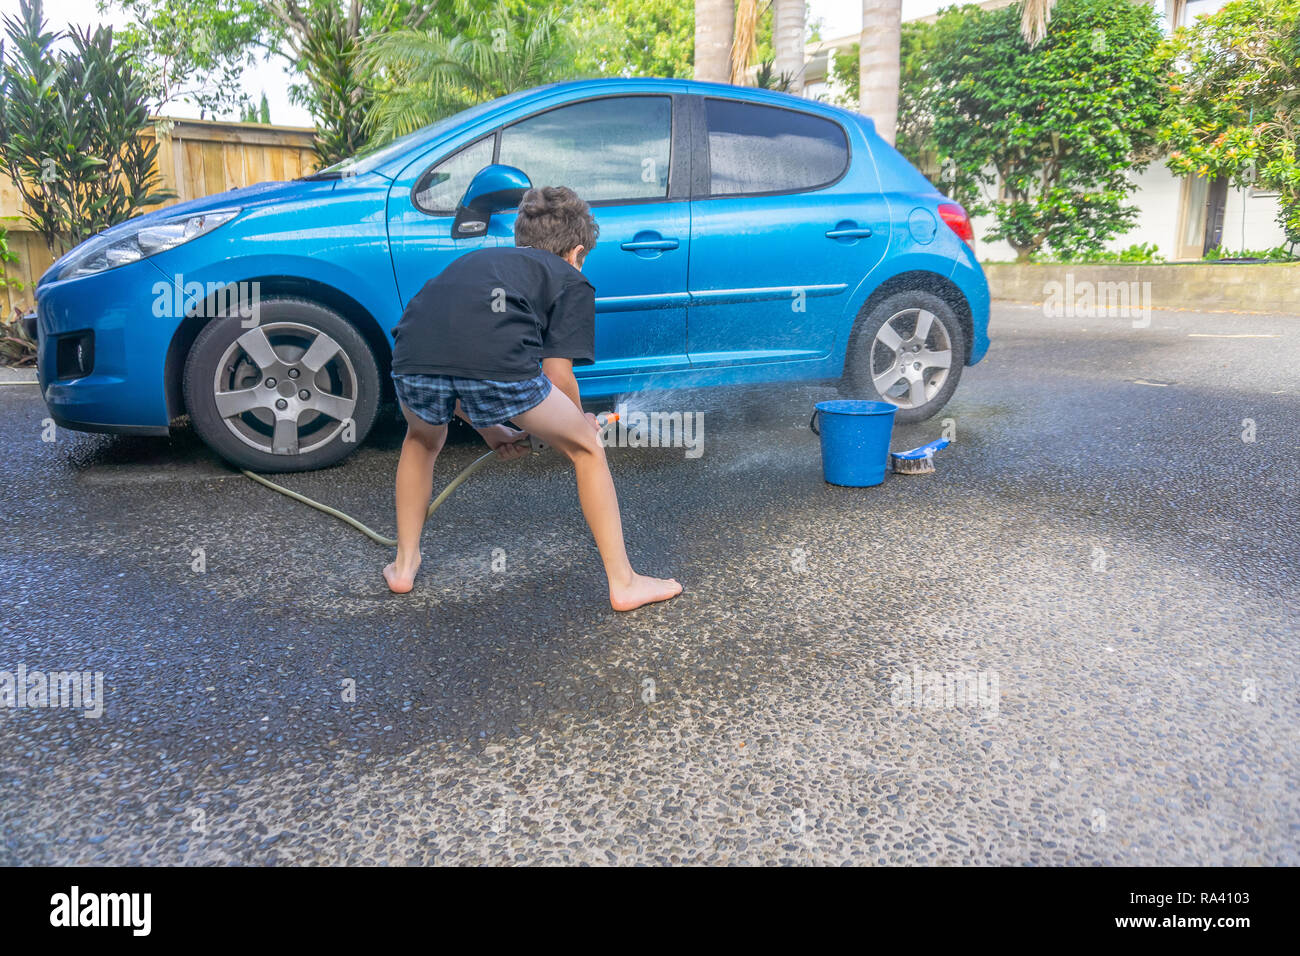 Boy earning pocket money cleaning blue compact car with hose, bucket of water and car brush - Stock Image